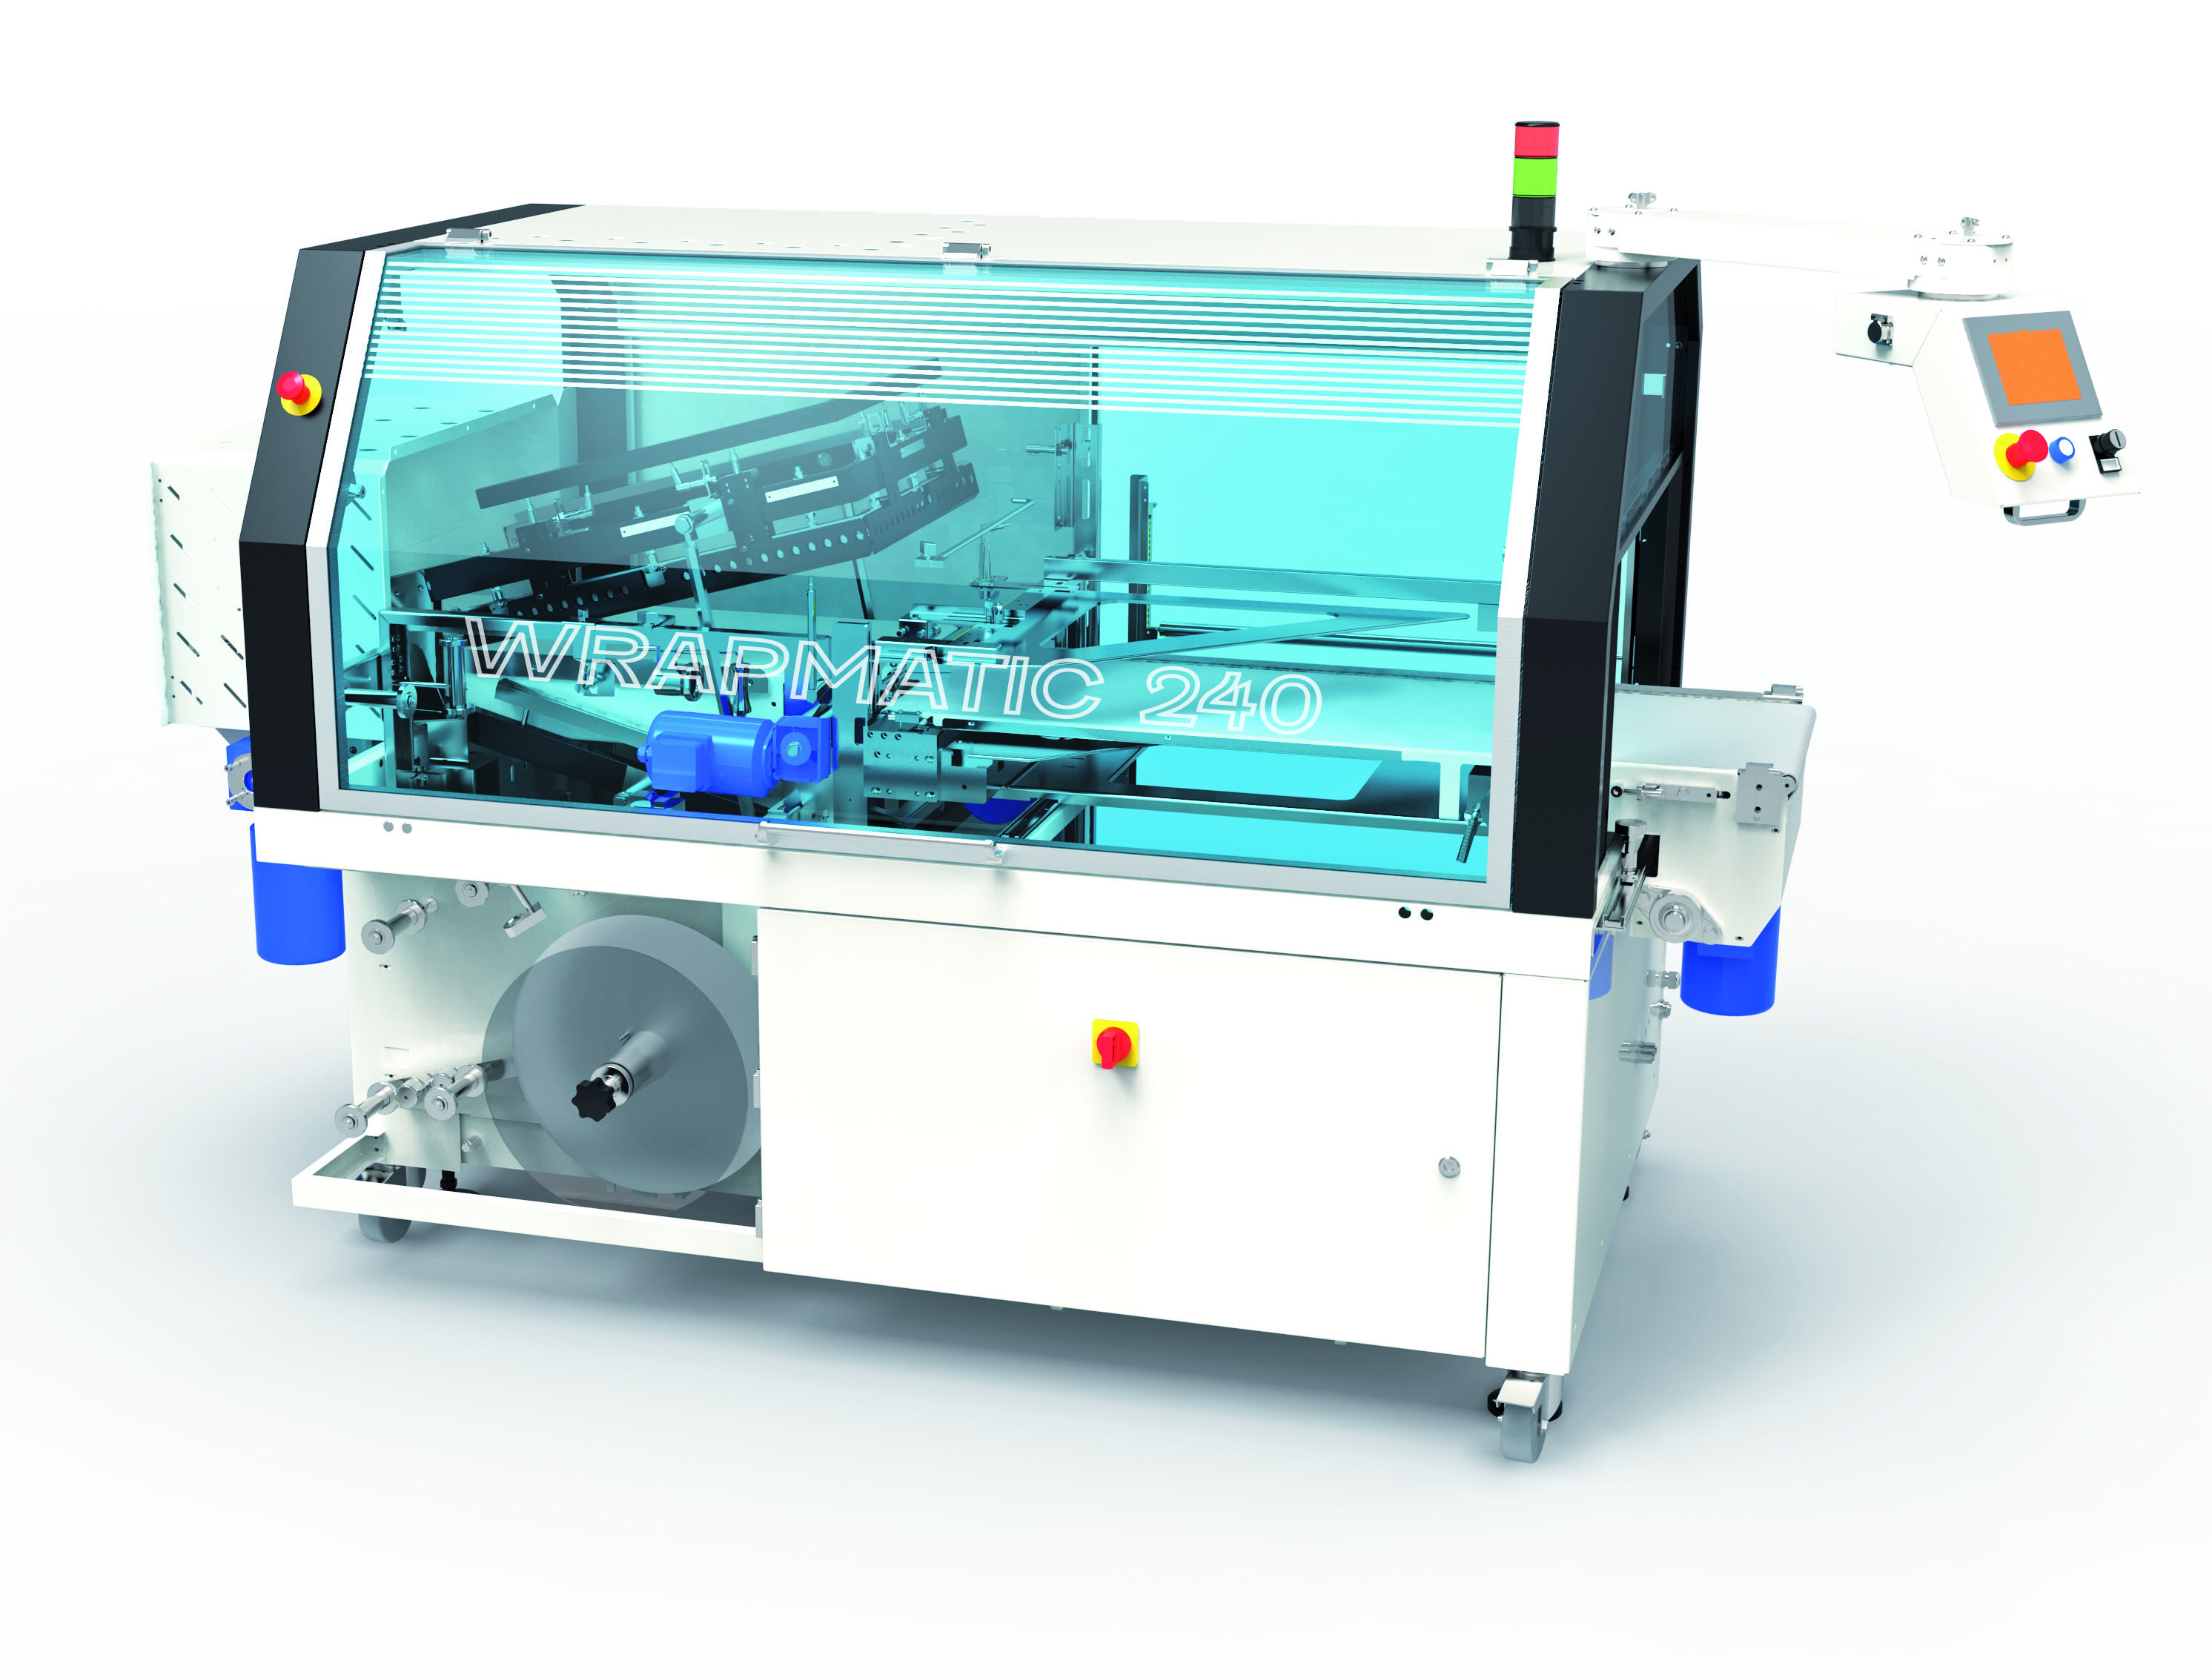 Wrapmatic 240 Packaging System